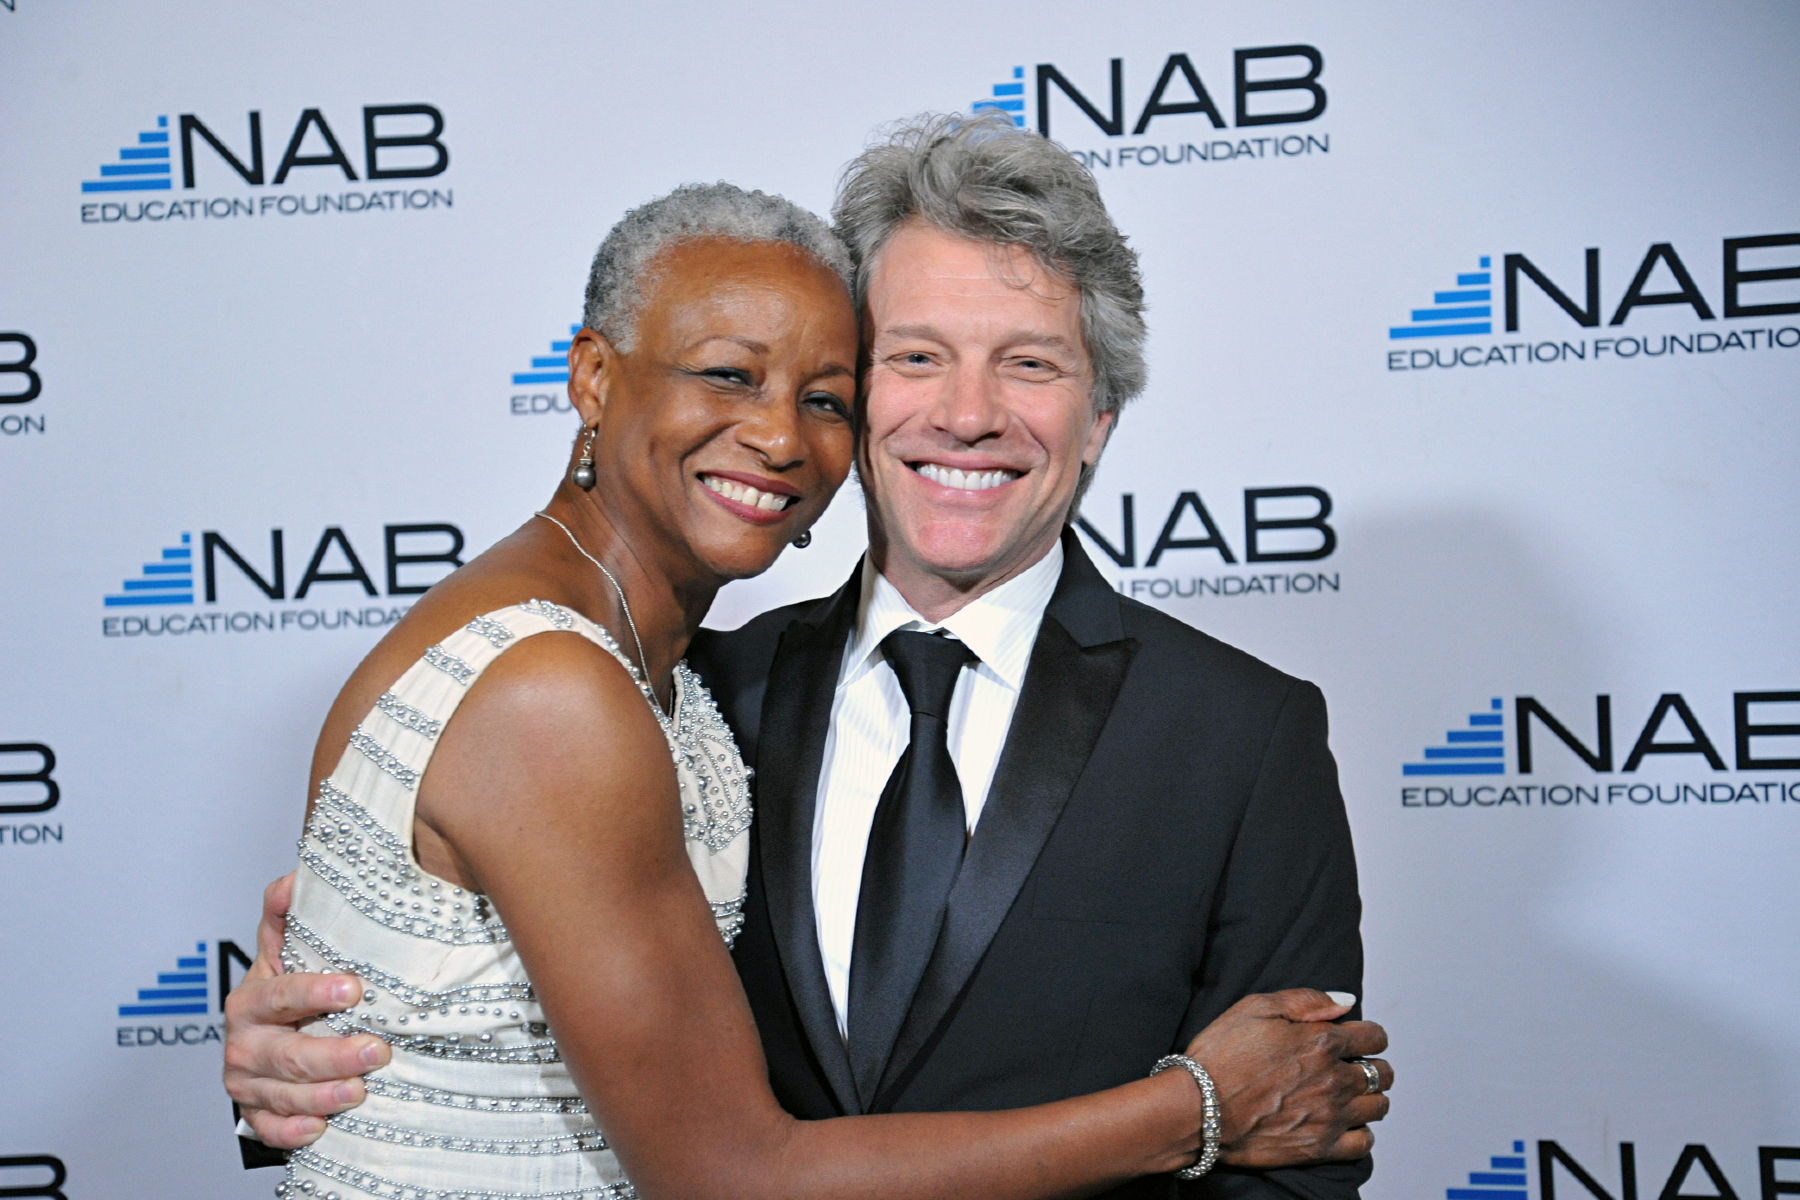 Singer Jon Bon Jovi meets a participant during a Phoenix Red Carpet Photography event.